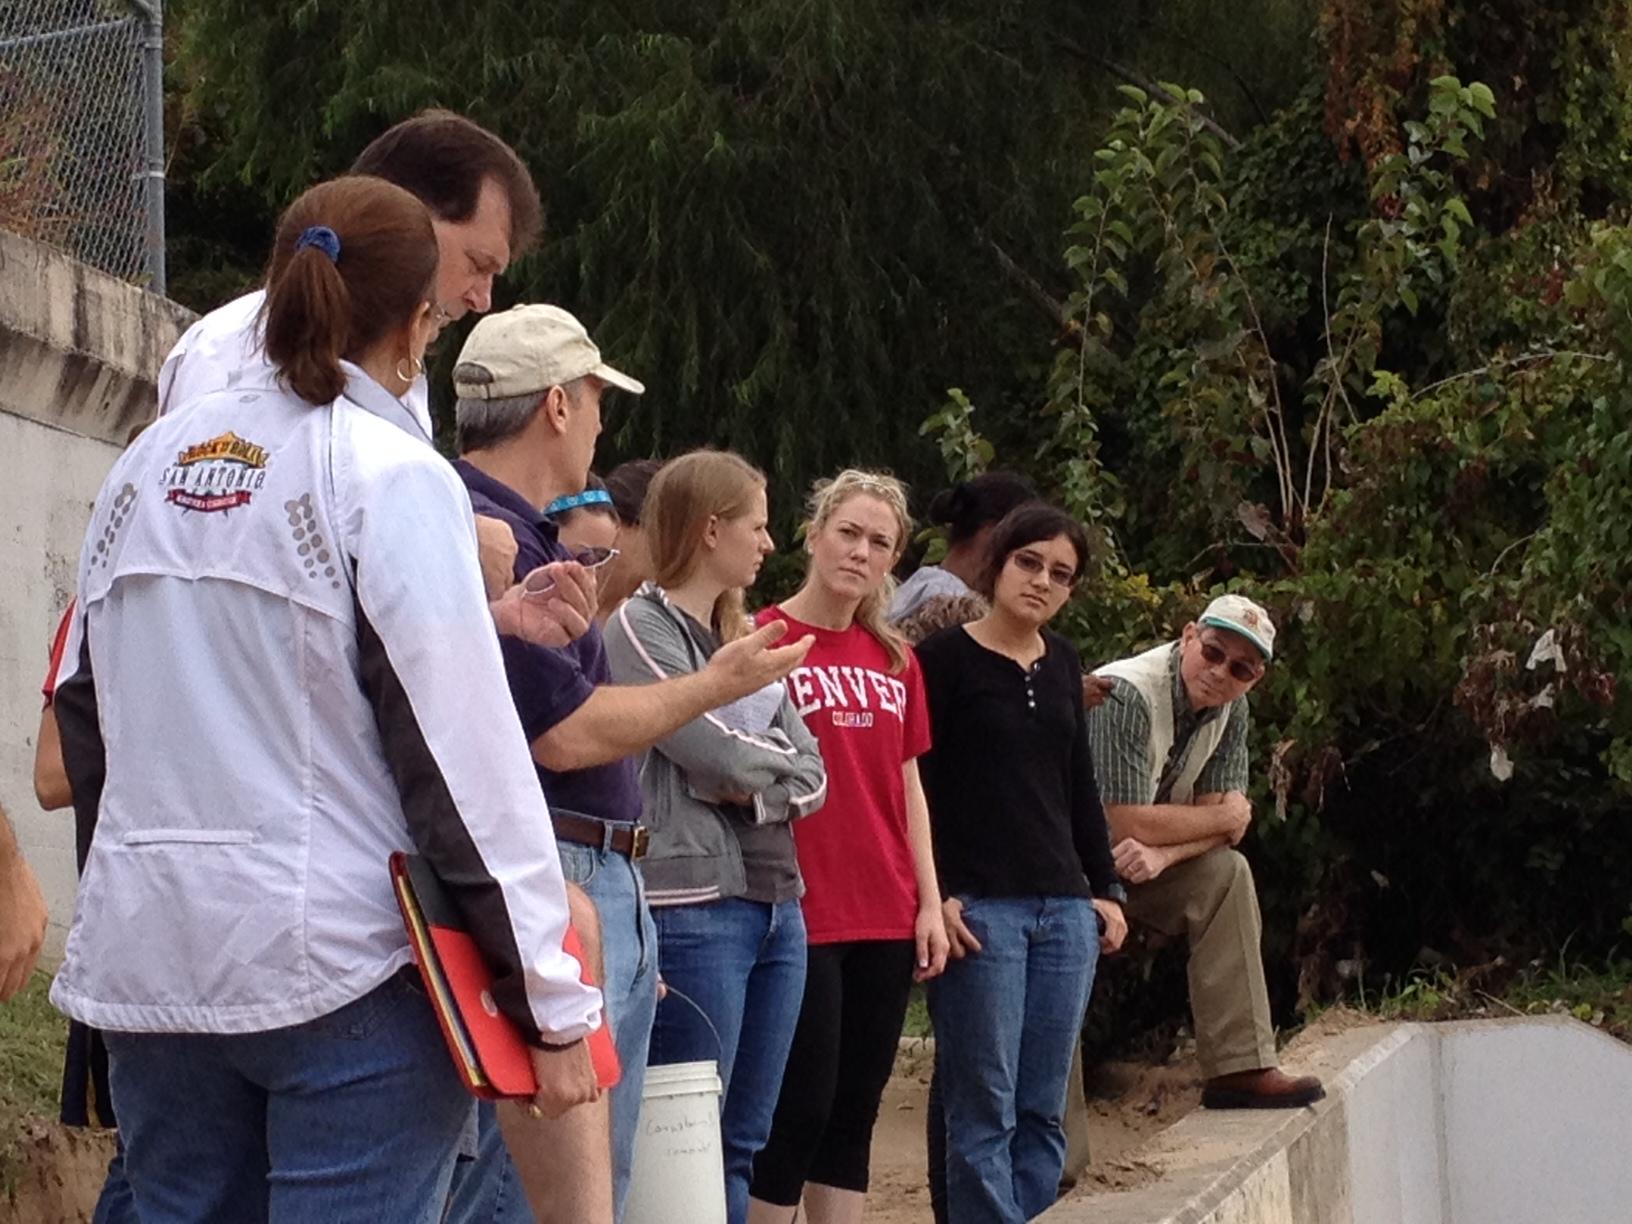 Associate Professor Brad Hoge works with teachers near th bayou during a training session in 2013.